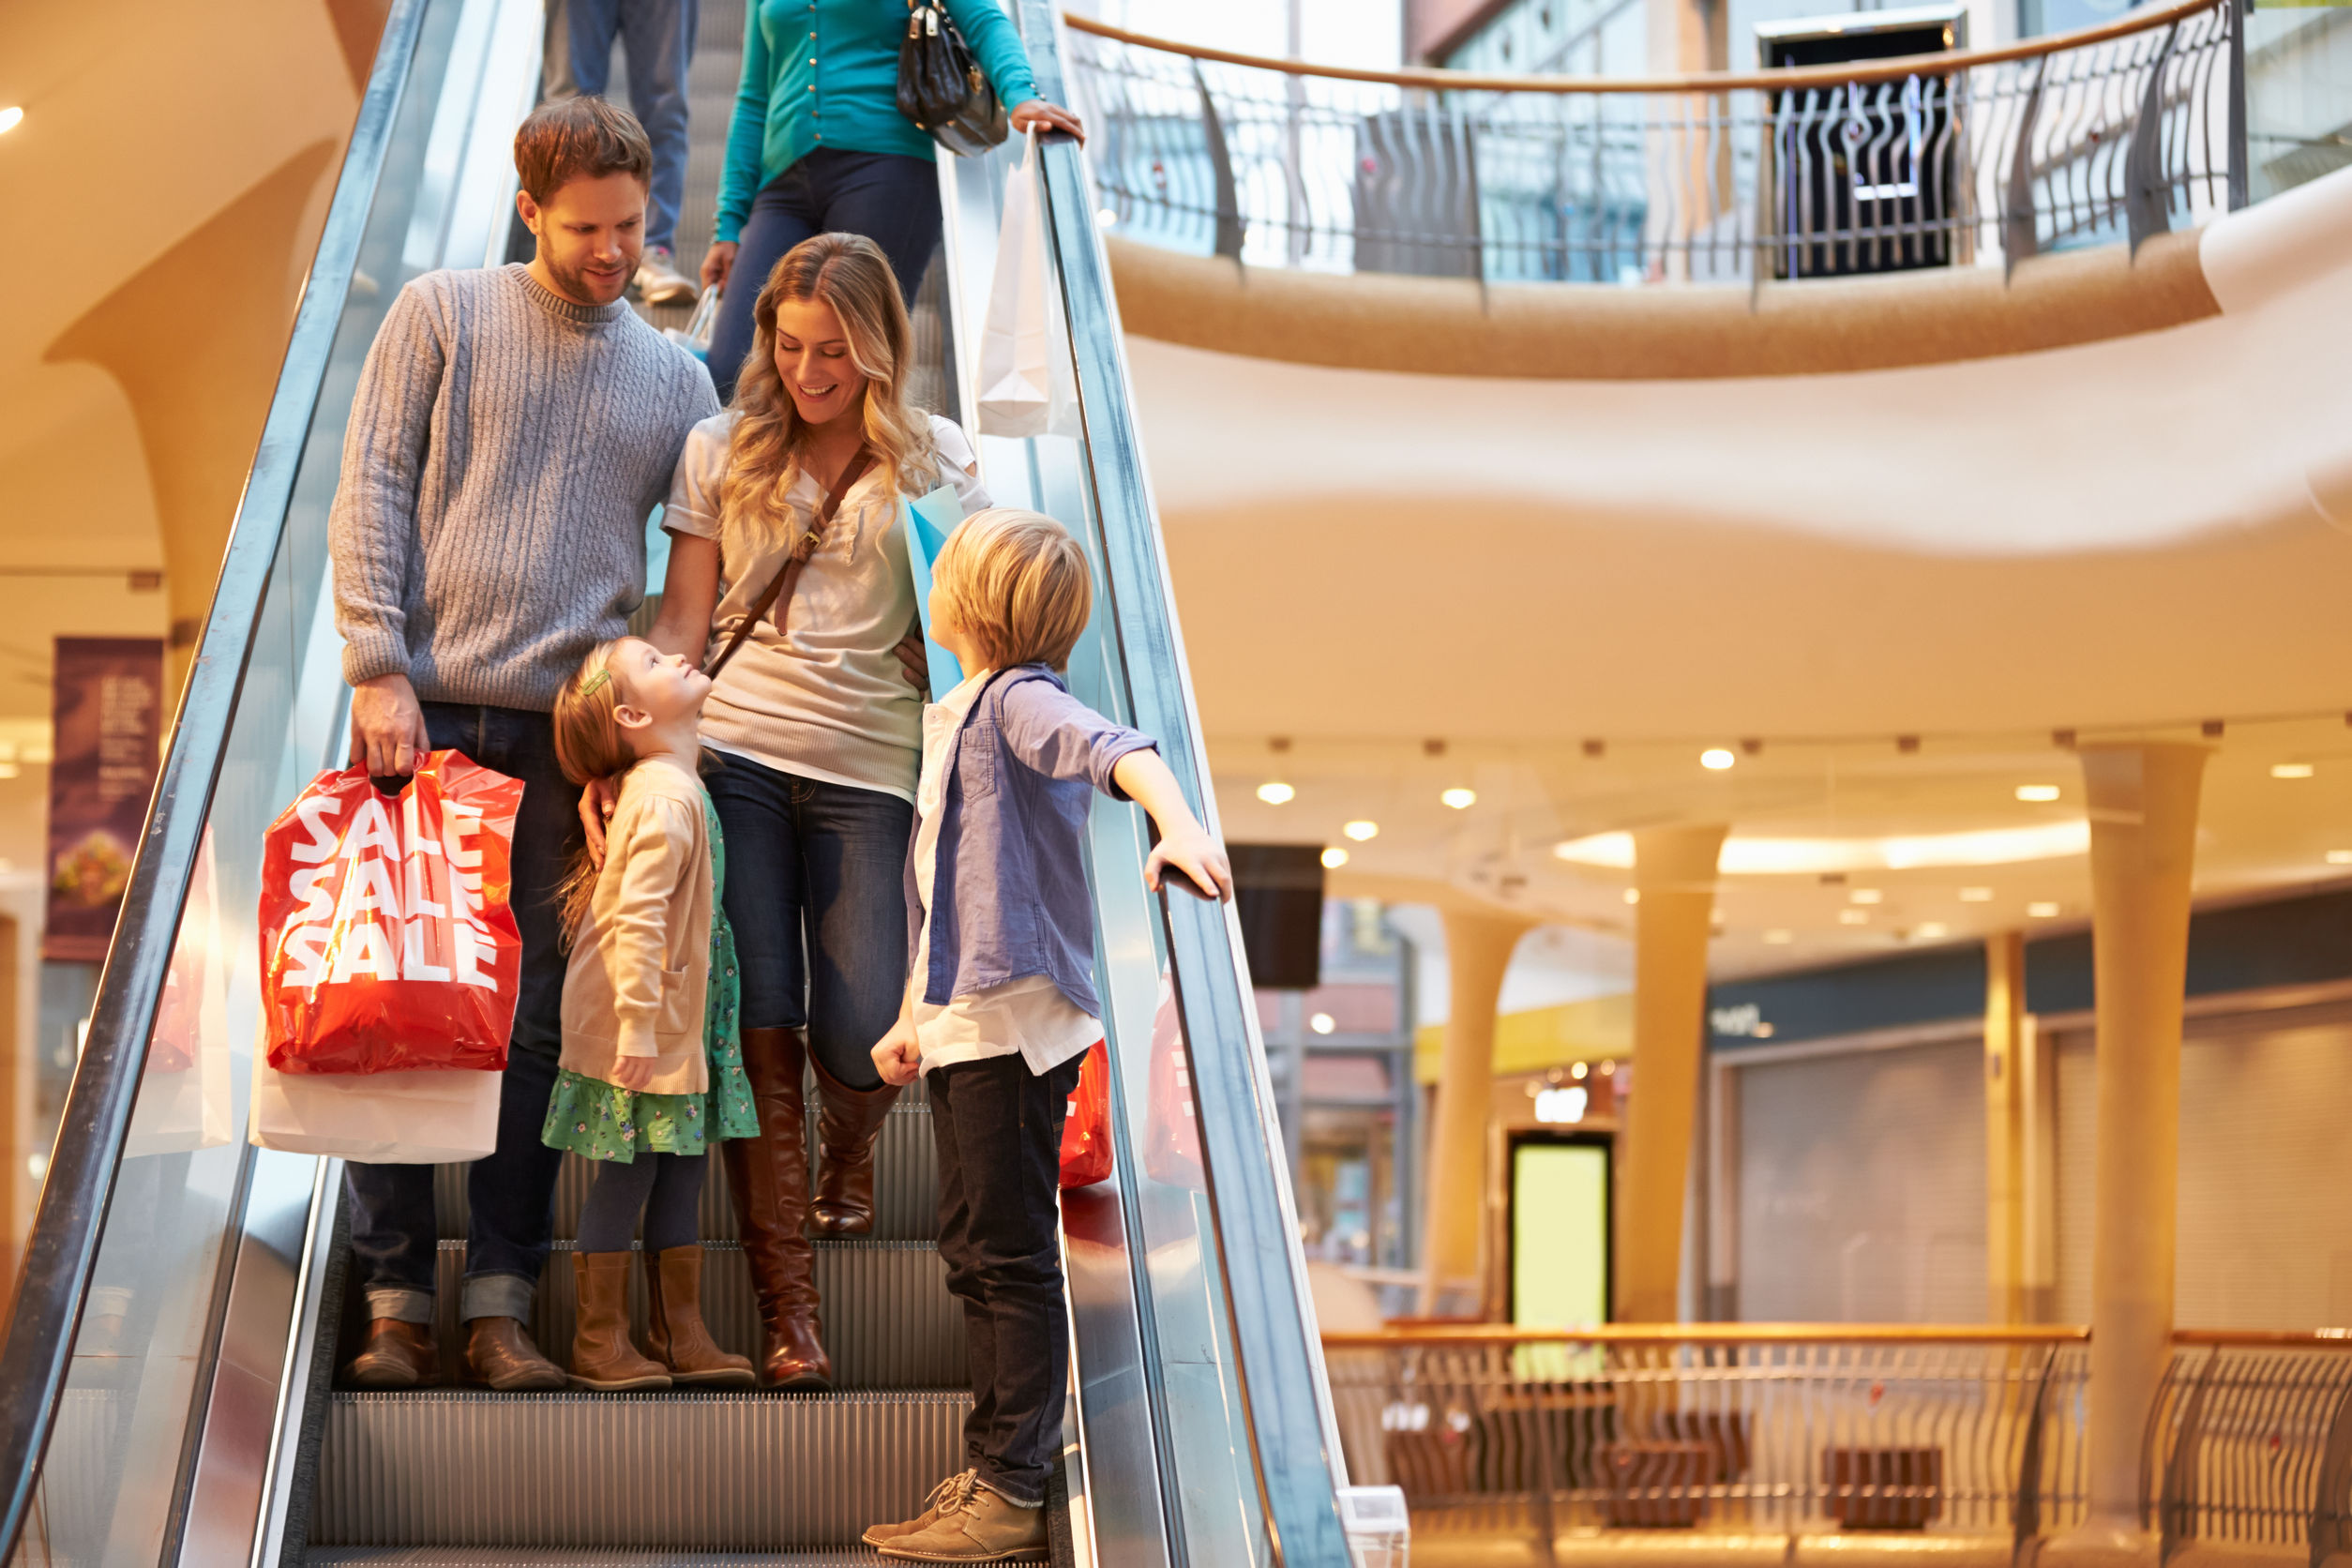 family on escalator in shopping mall together -- shopping experience